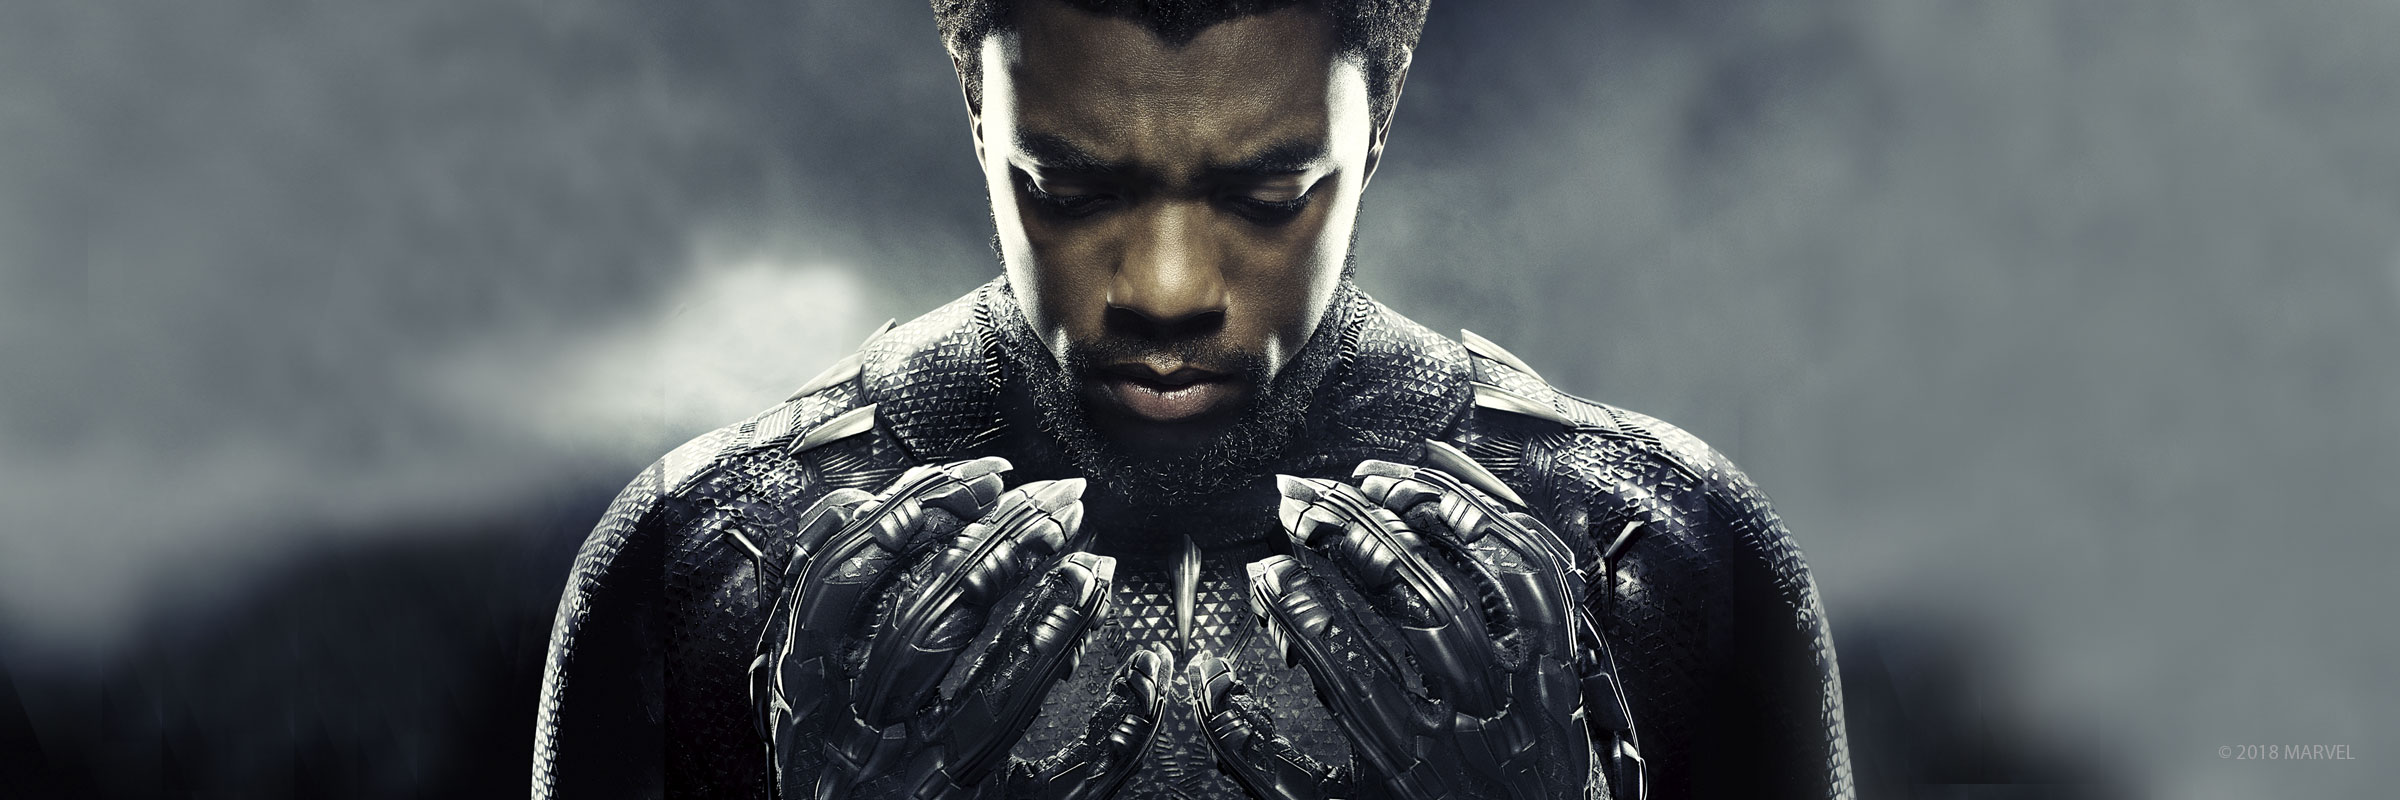 Black-Panther_movie-hero_2400x800_3x1